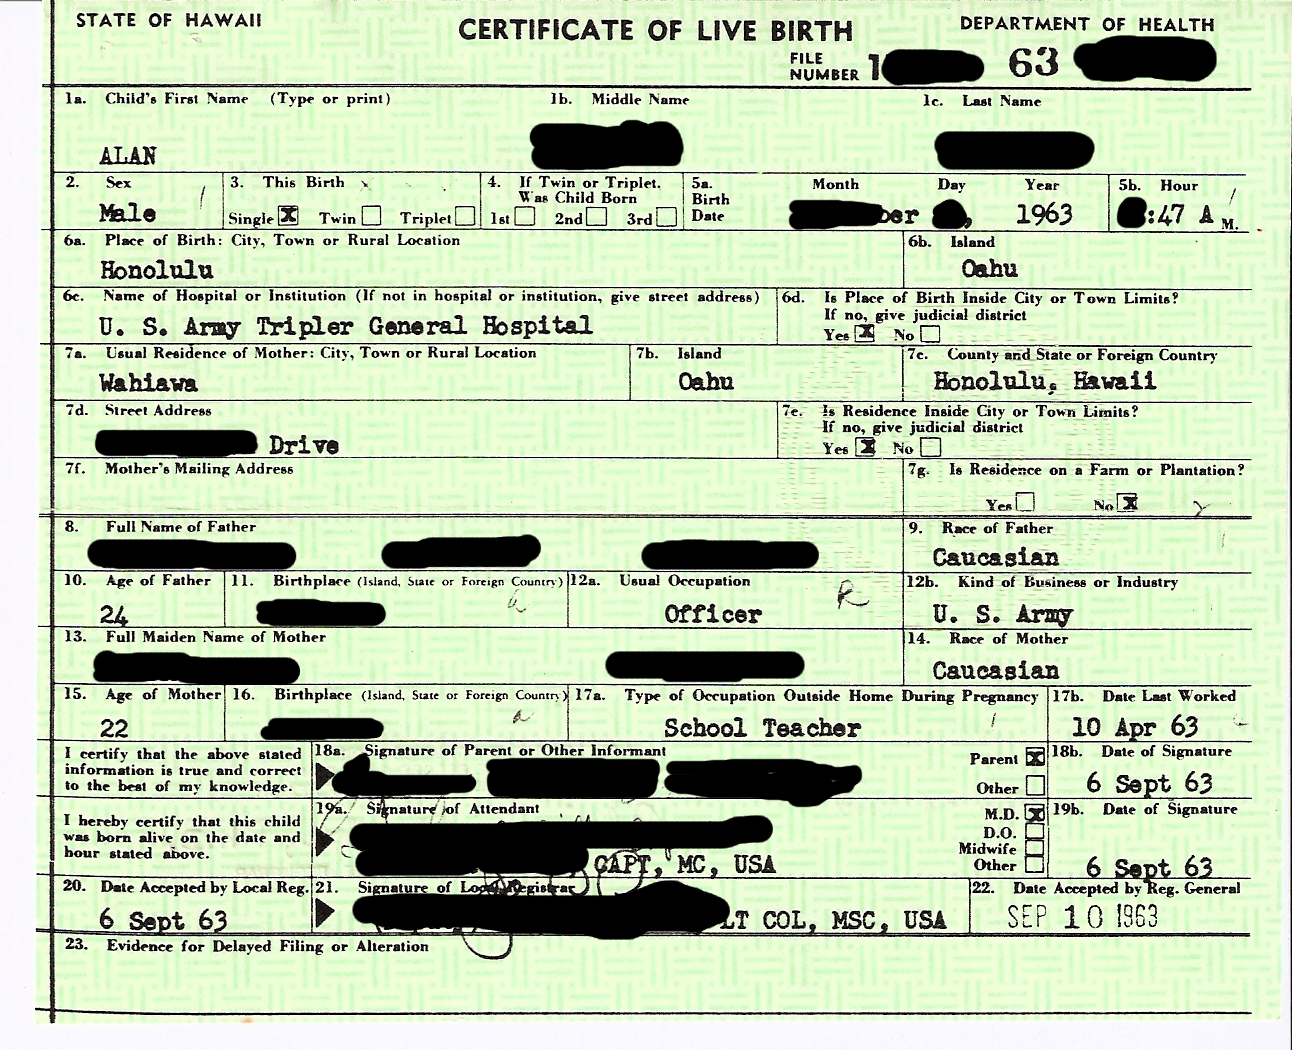 Hawaii birth certificate 1963 snarkybytes hawaii birth certificate 1963 aiddatafo Image collections